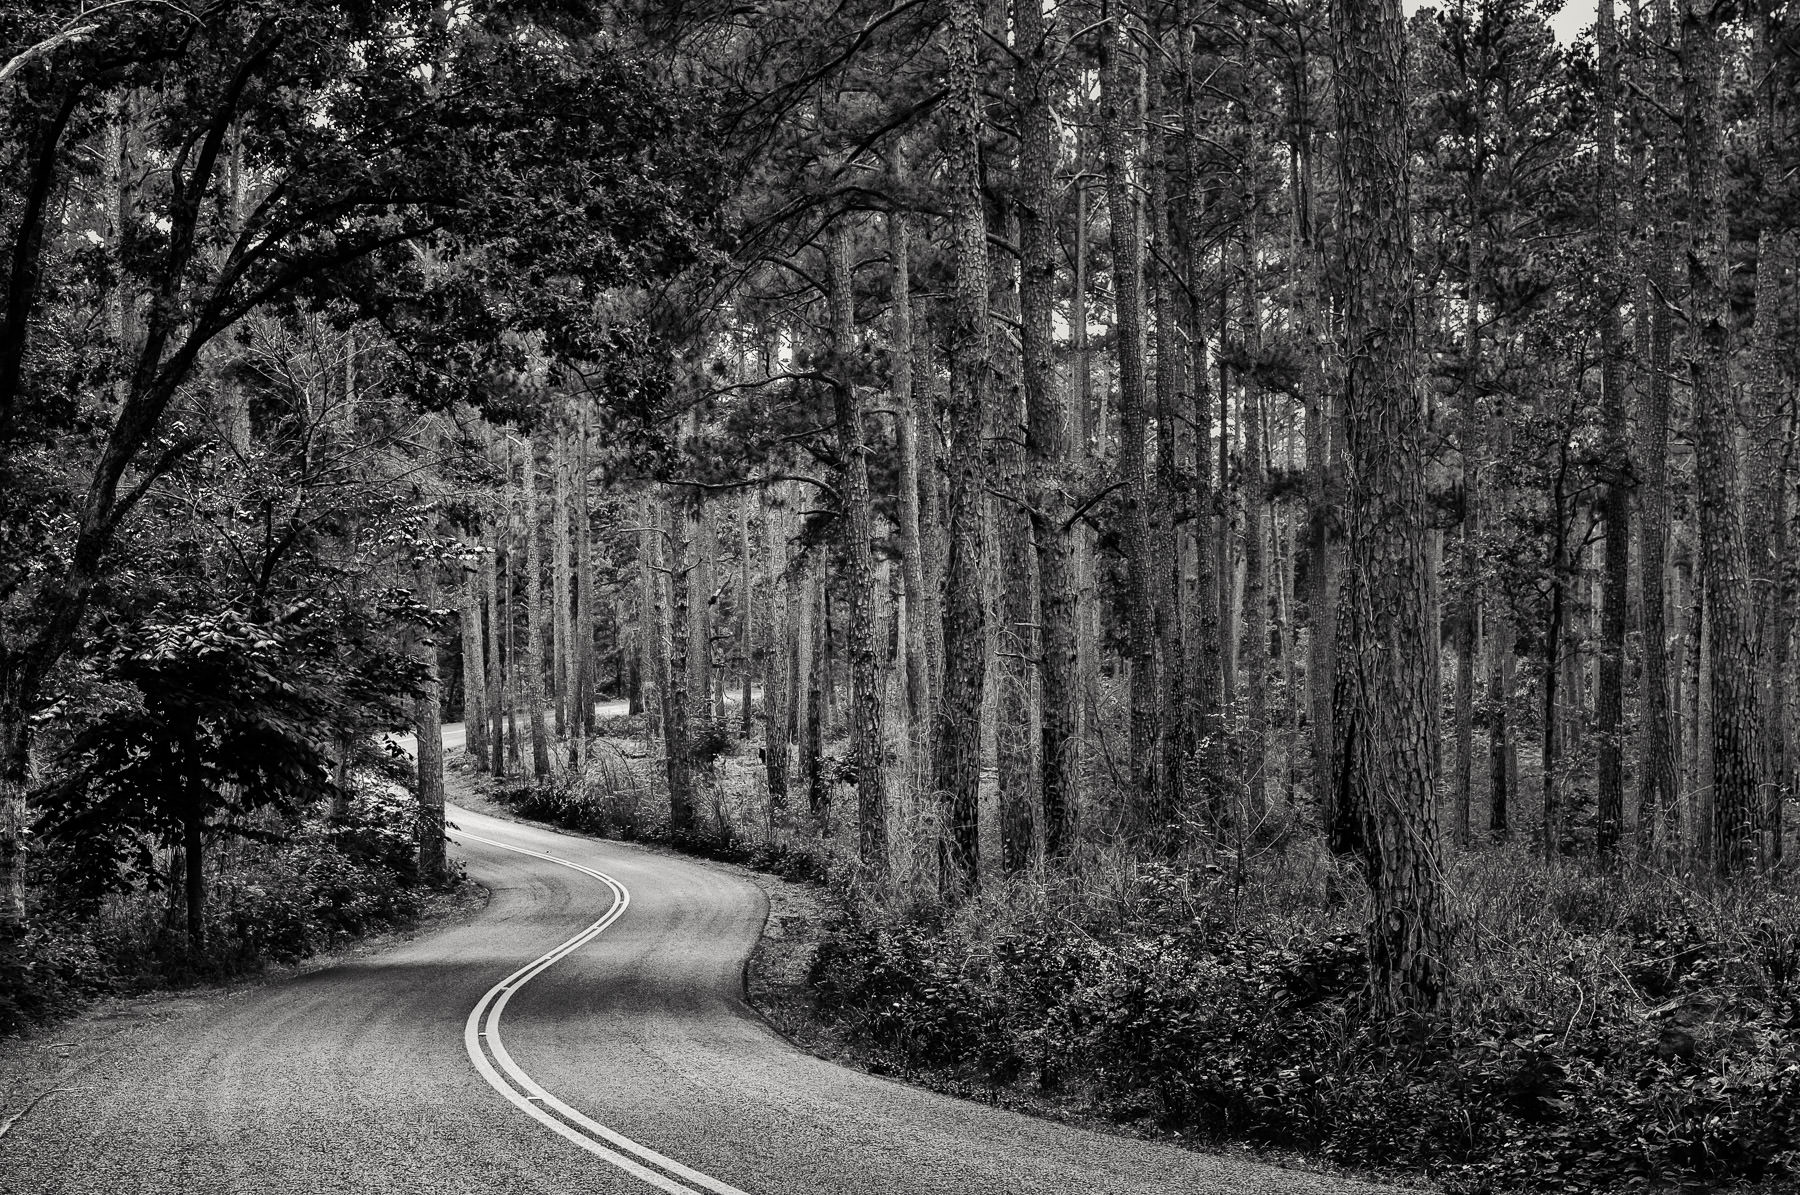 A road winds through the pine forest of Tyler State Park, Texas.